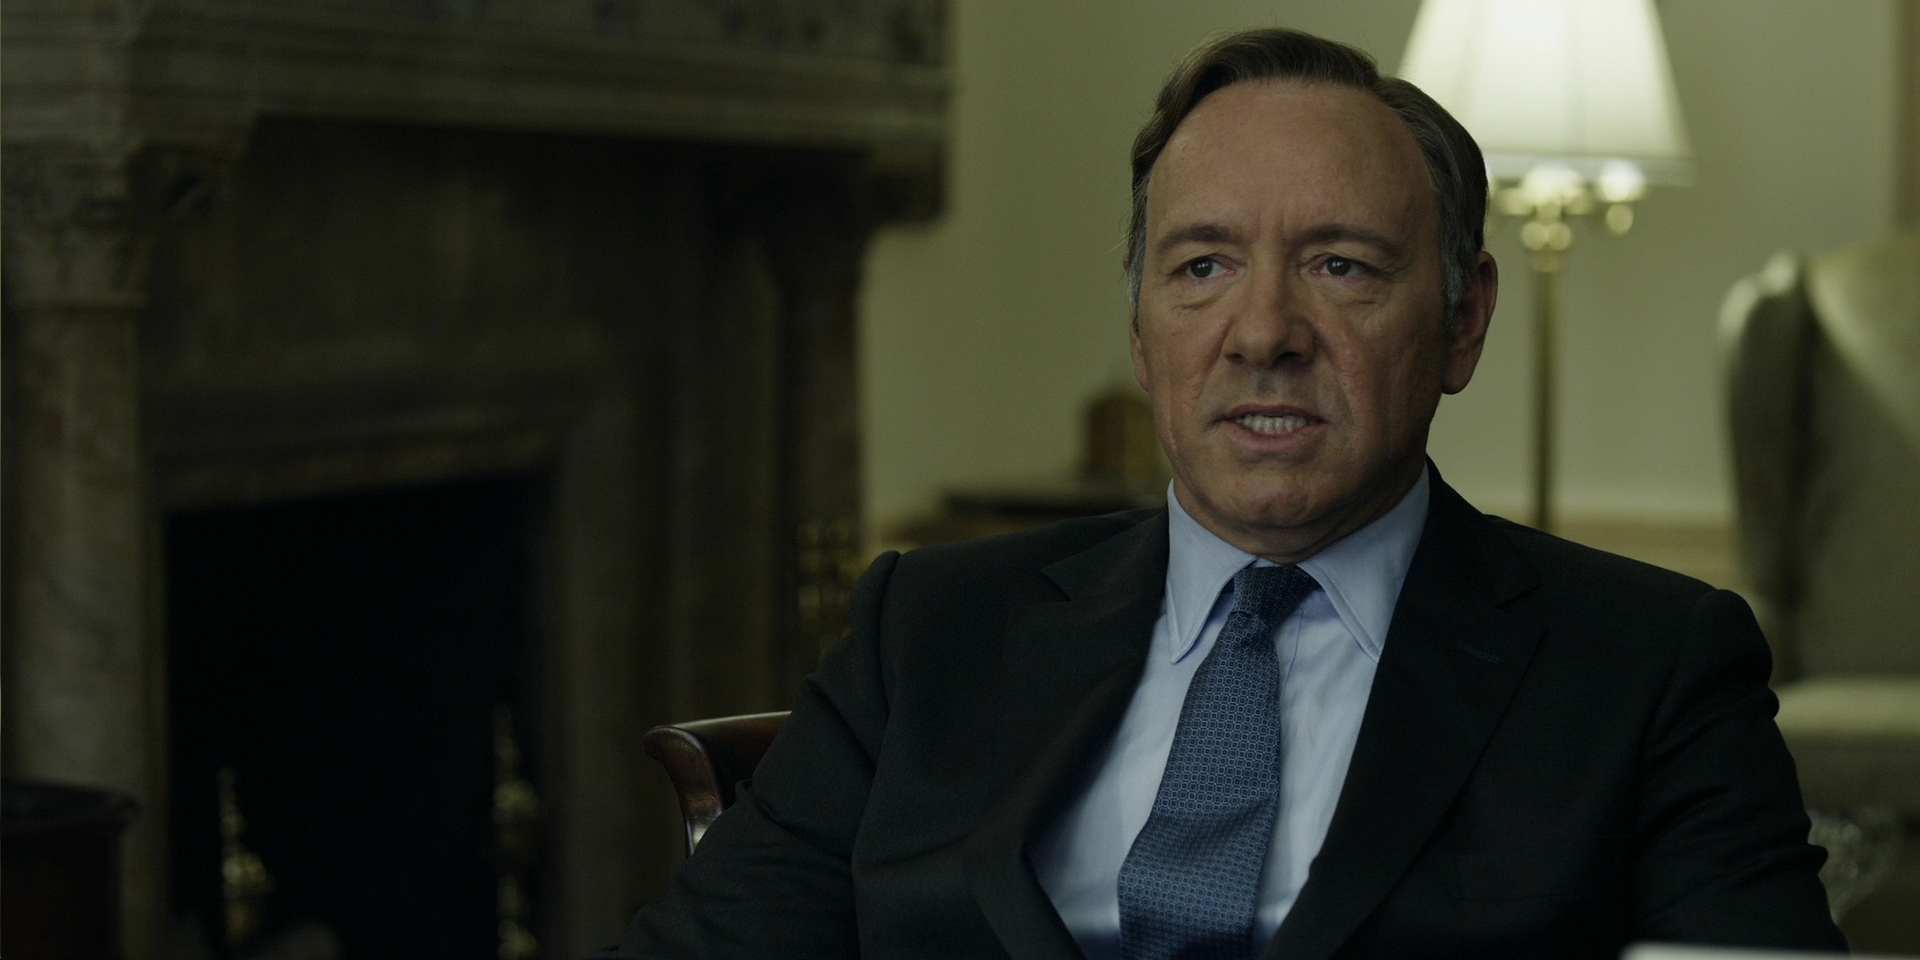 download House of Cards - S01 Complete - 1080p x264 ENG-ITA BluRay (2013) -Shiv@